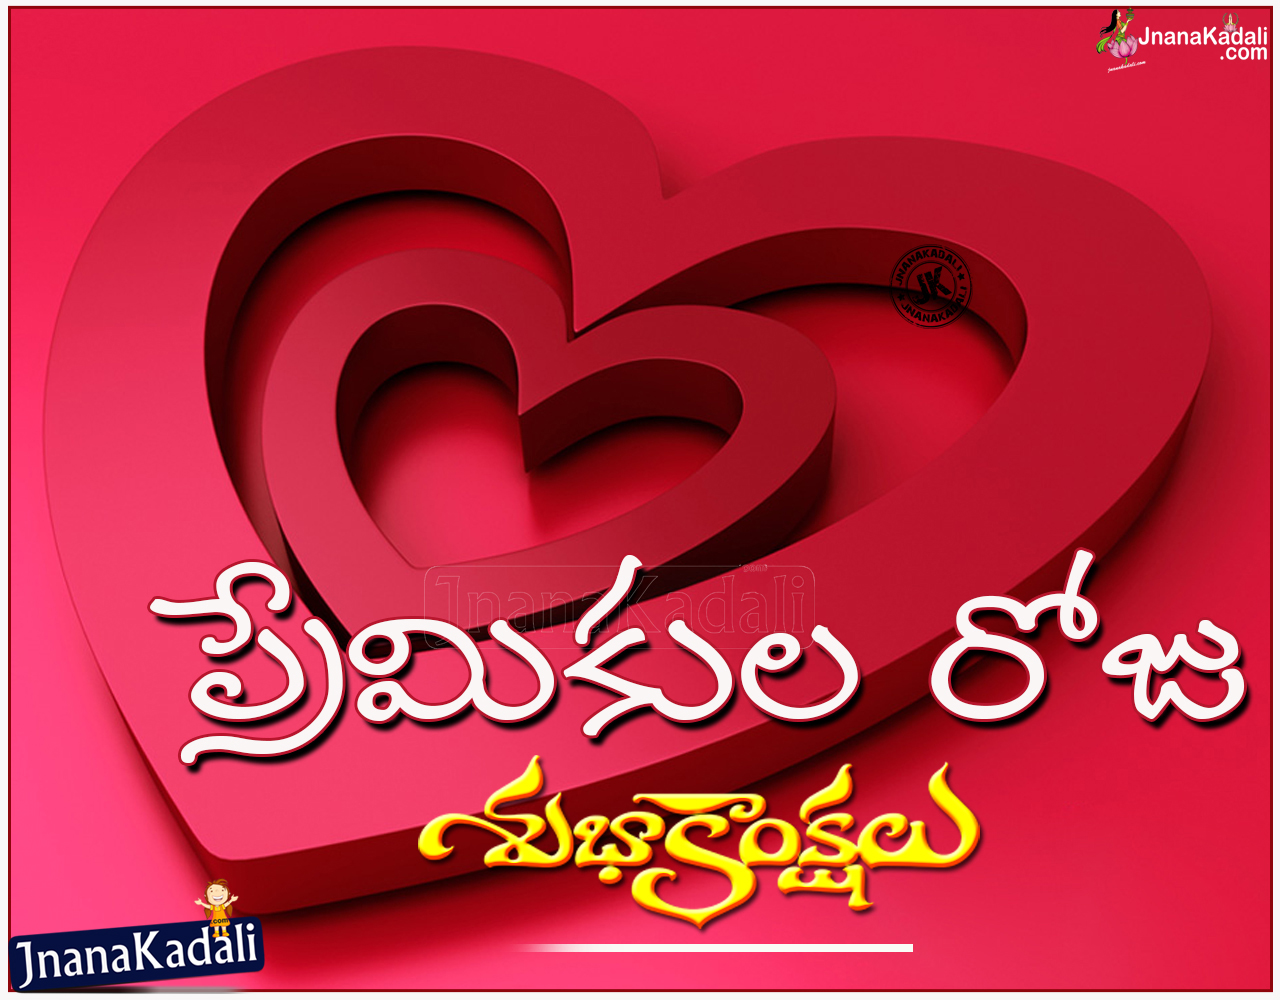 valentines day quotes for girlfriend in telugu - Heart touching whatsapp Love quotes Nice Valentines Day